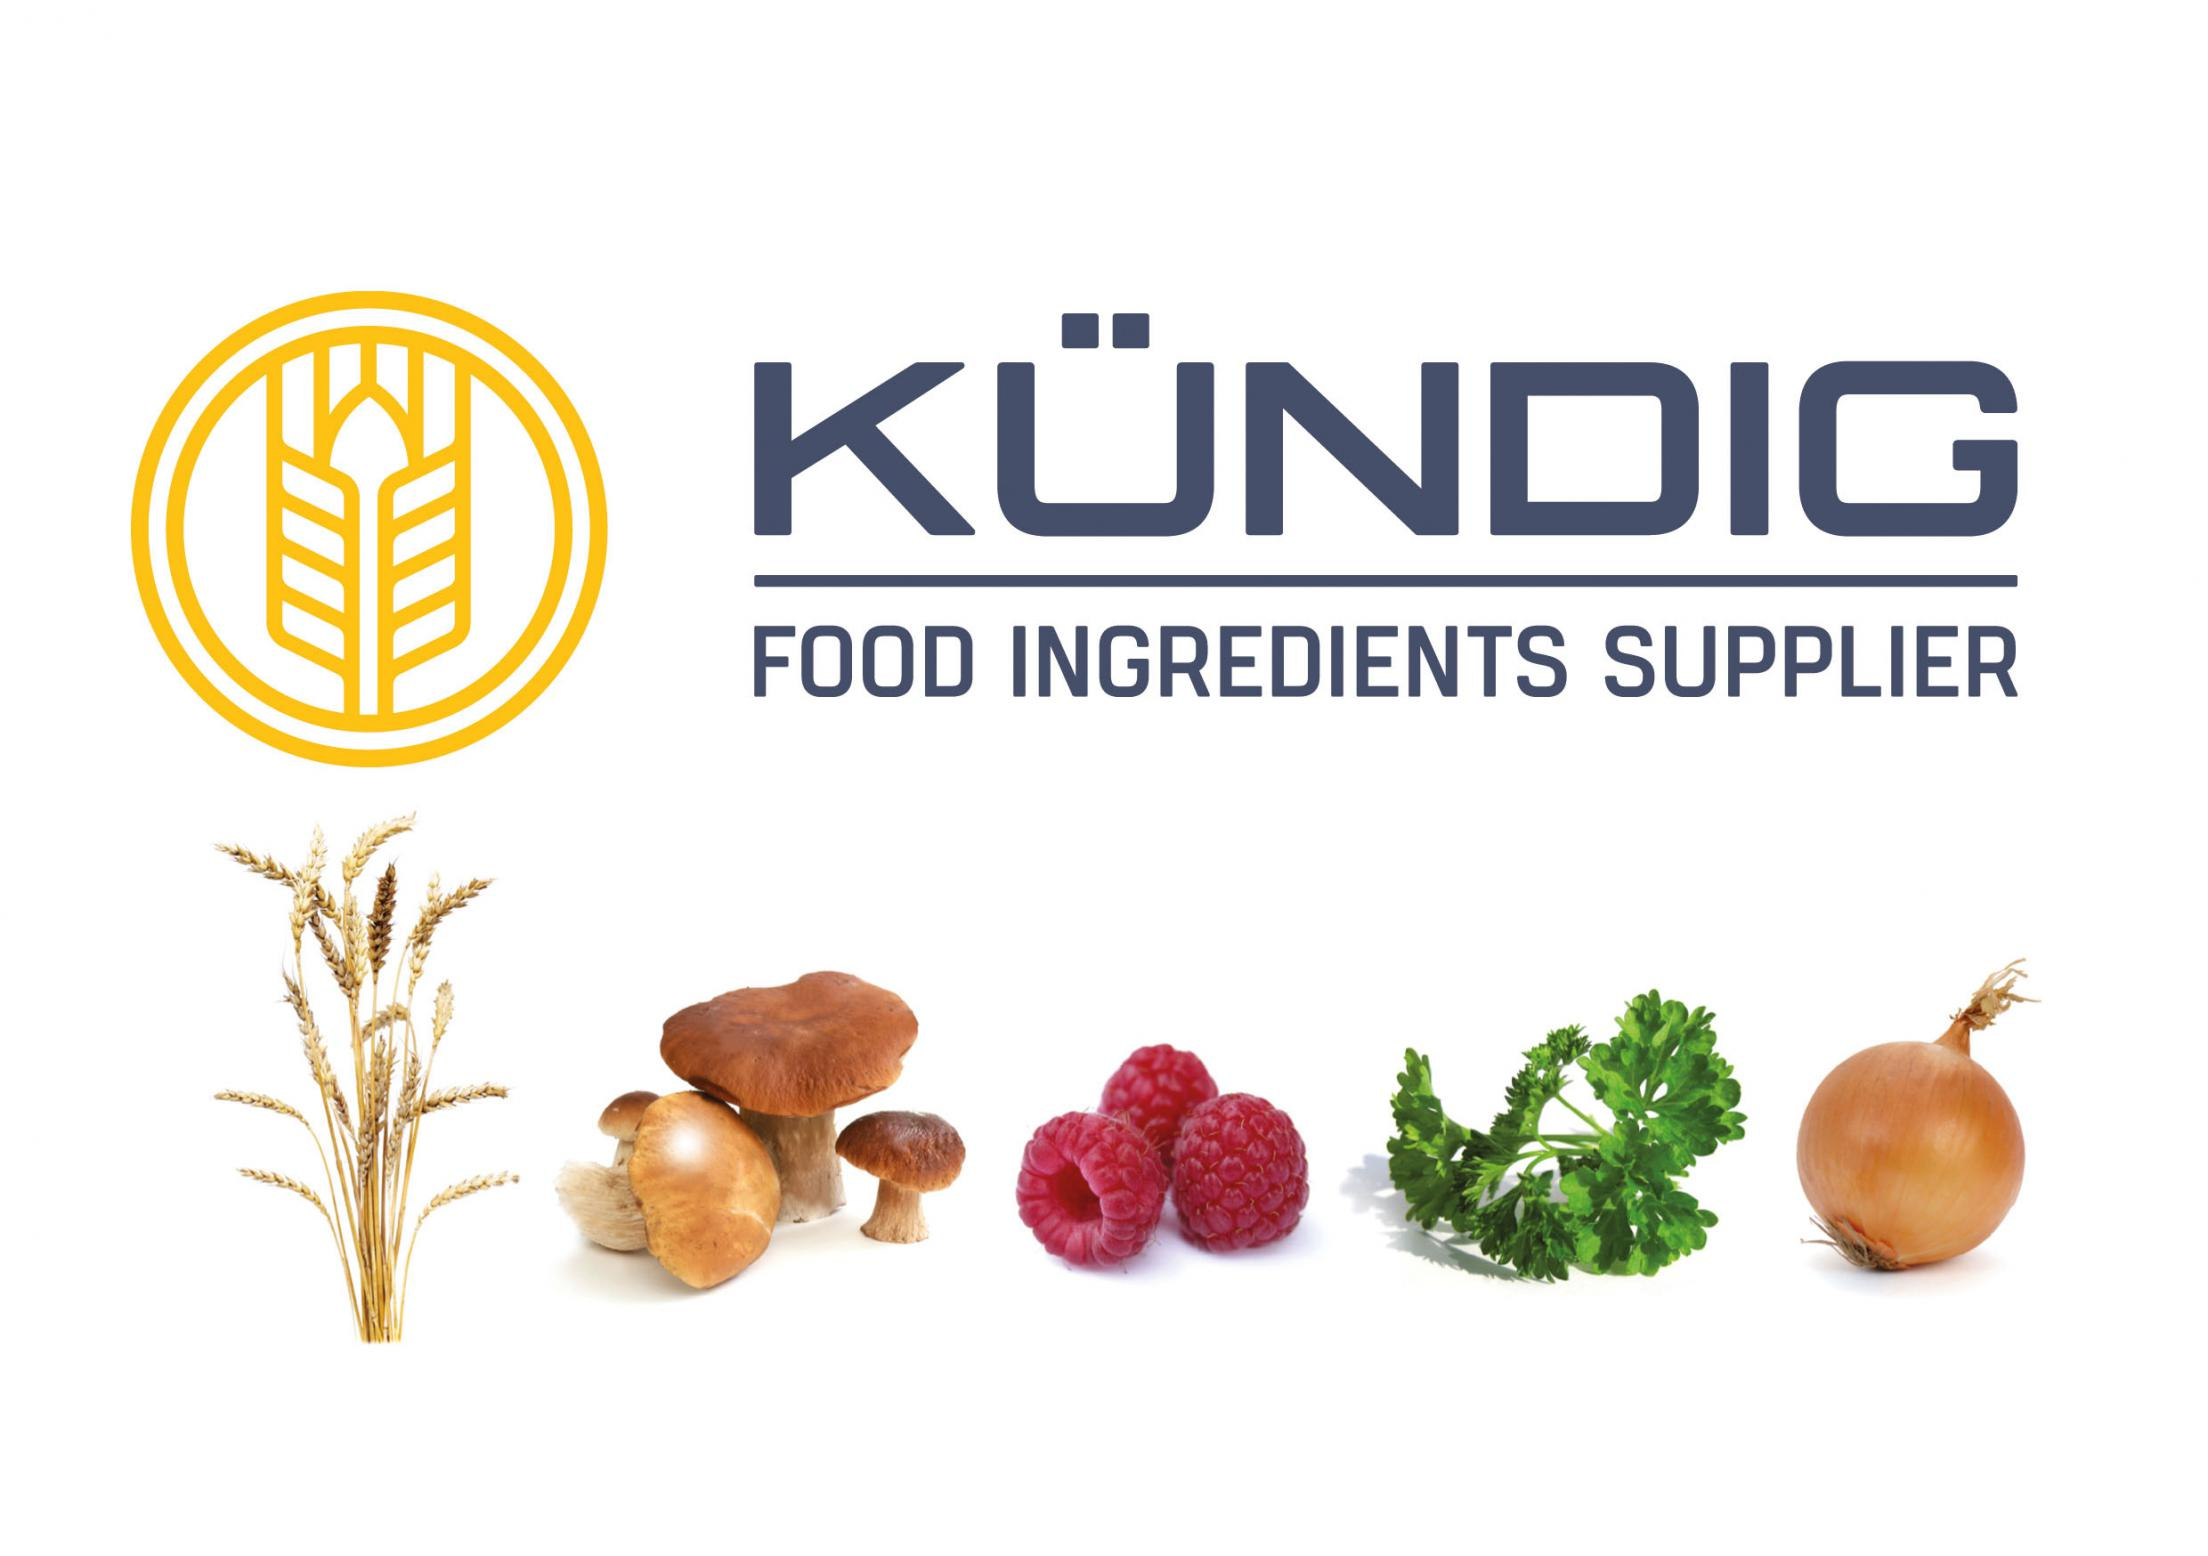 Kündig – Food Ingredients Supplier - Winner Fast Moving Consumer Goods